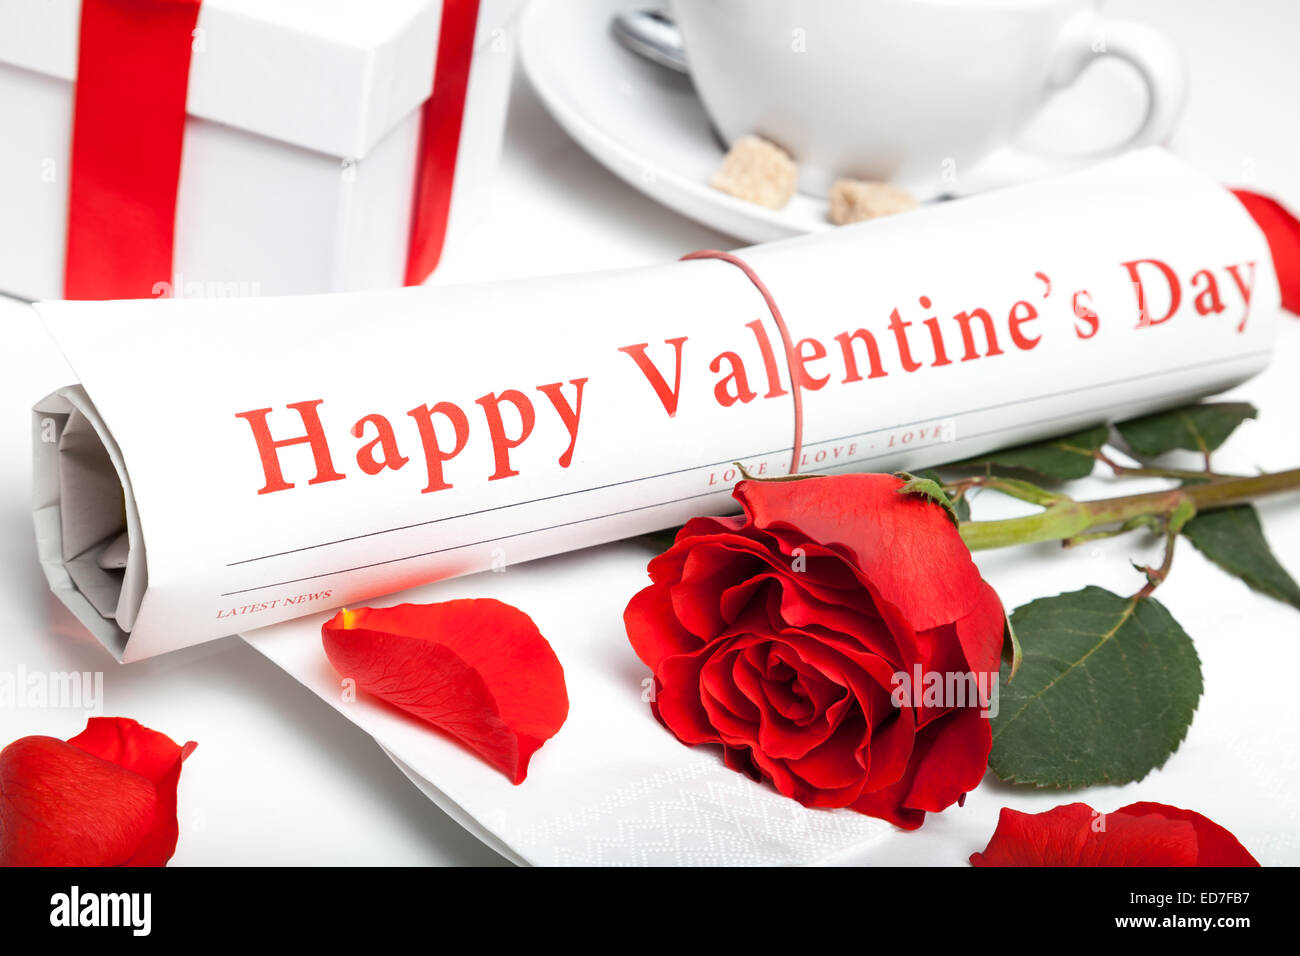 'Happy Valentine's day' Journal, rose rouge et d'aujourd'hui fort Photo Stock